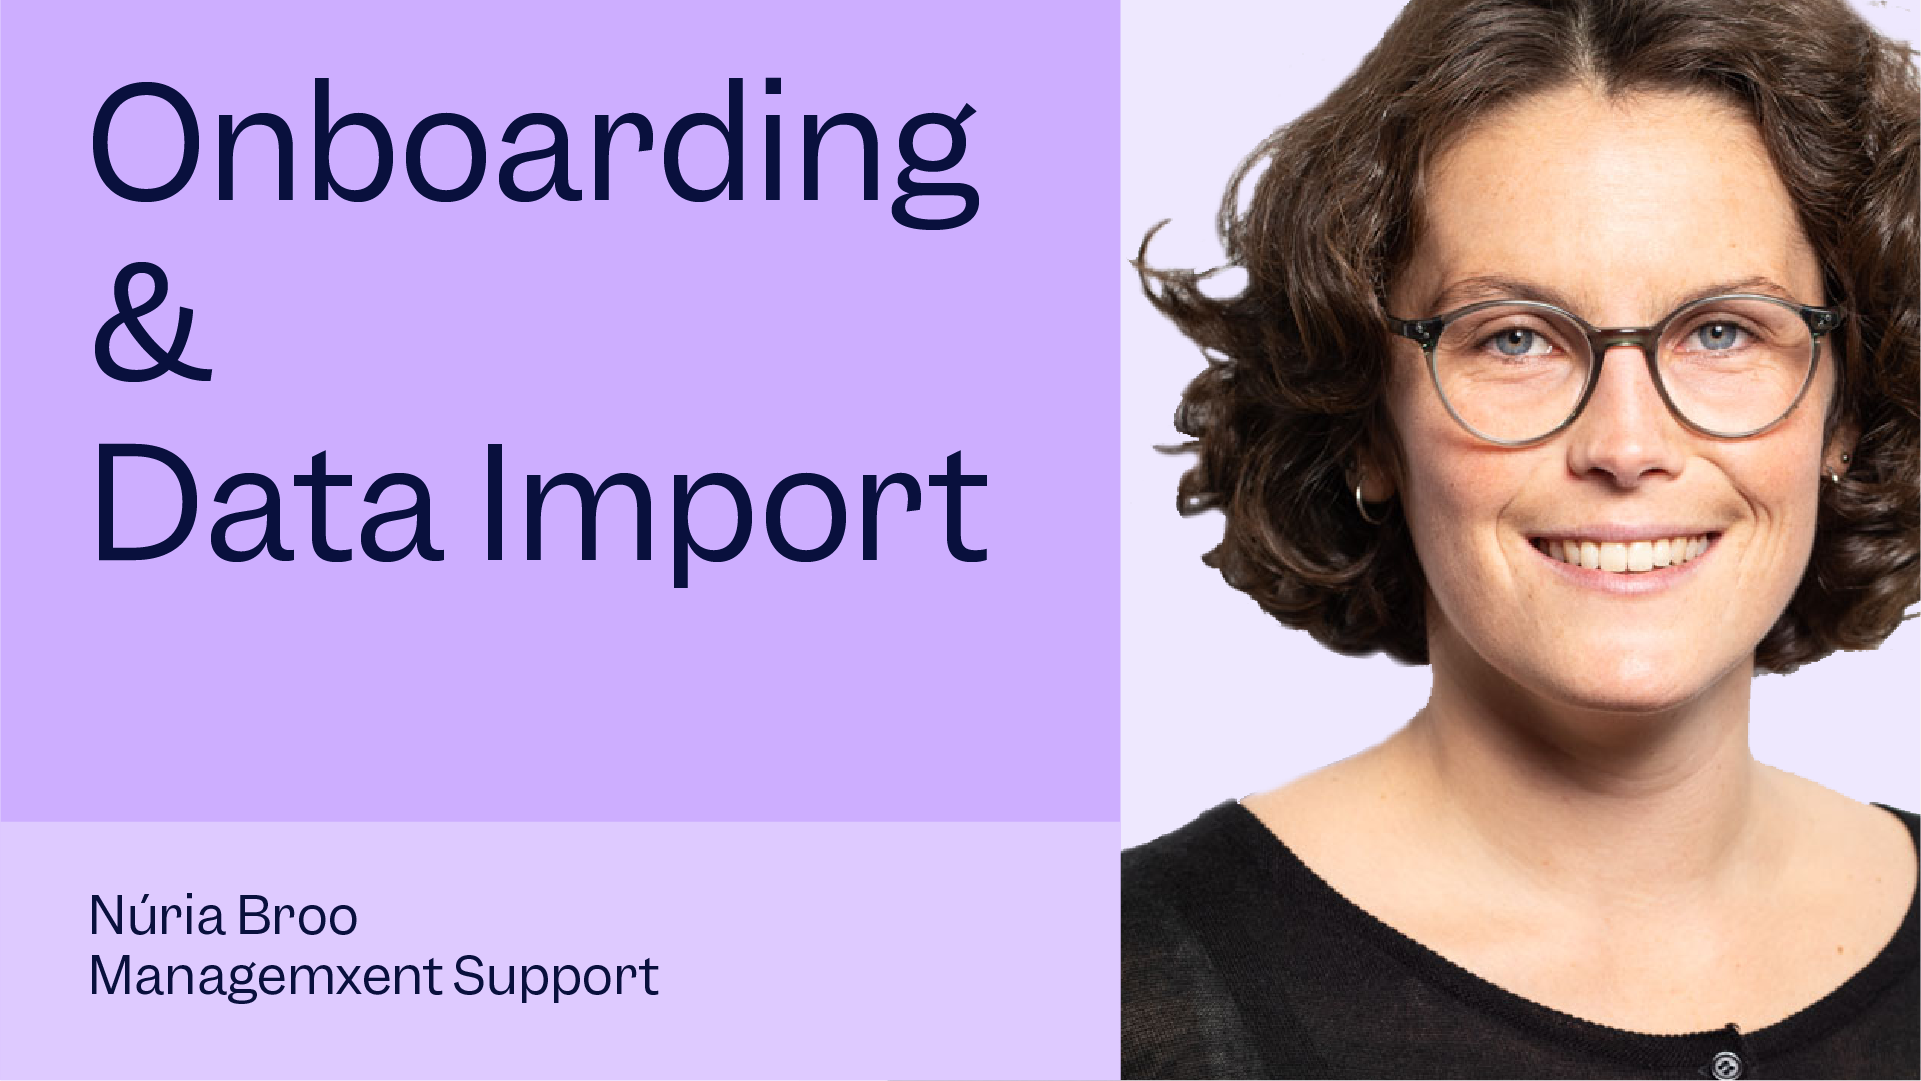 Scilife-Onboarding-and-Data-Import-Nuria